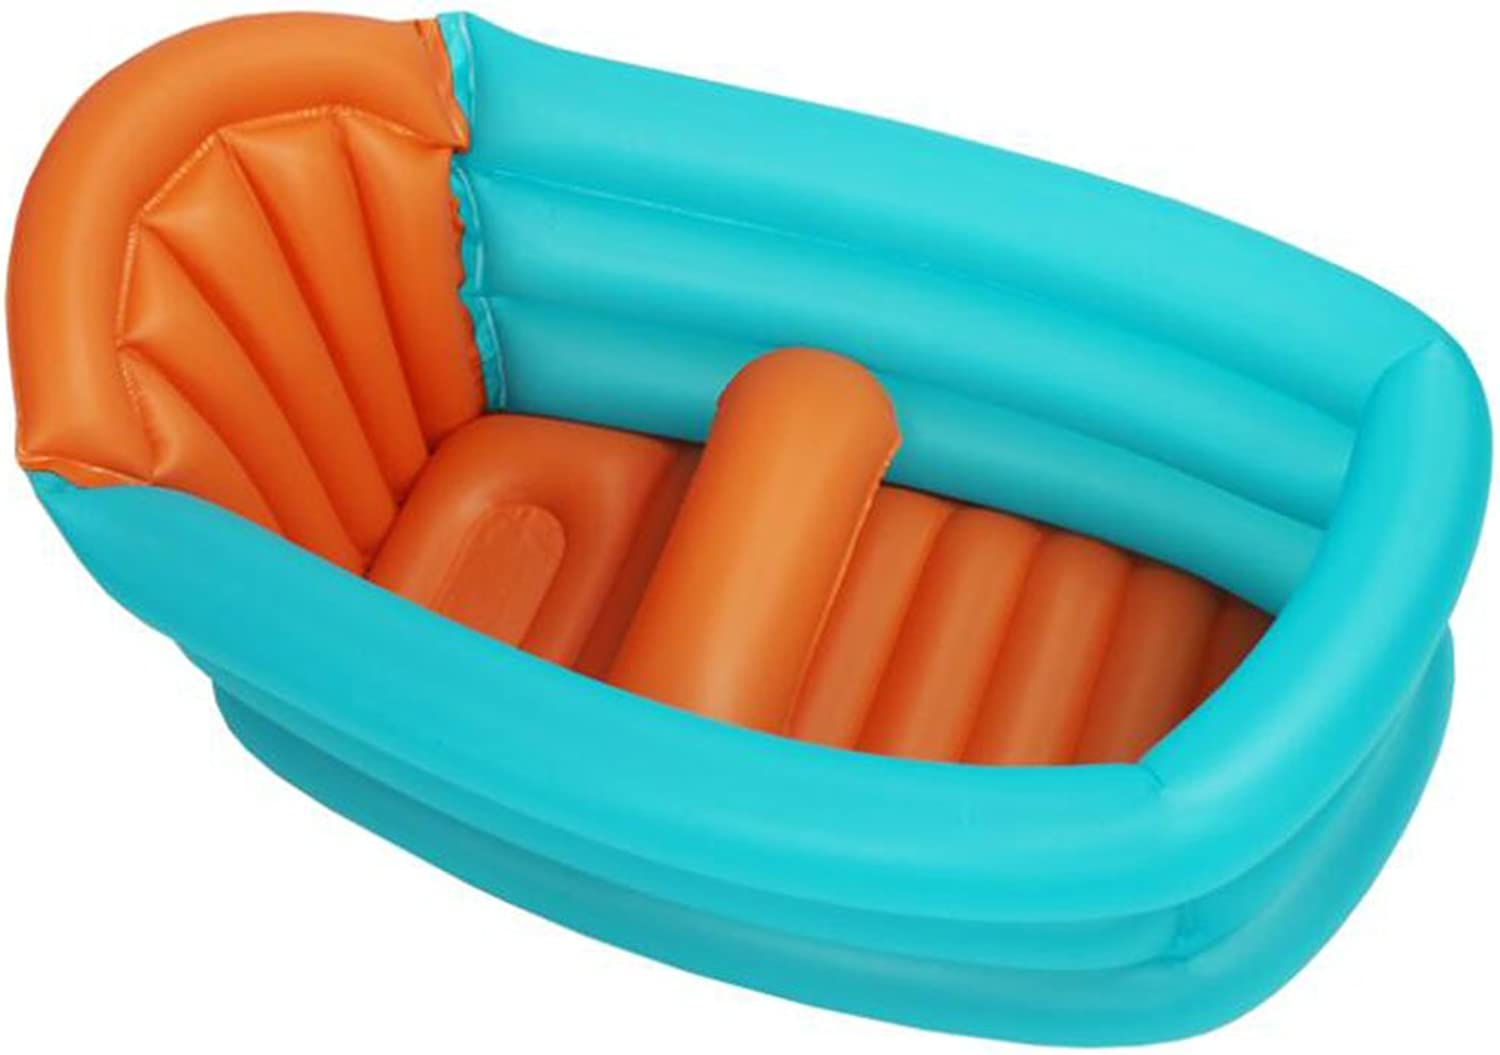 Bloomy Home- Inflatable Baby Bath Tub Kid Infant Toddler Thick Foldable Bath Tub with Soft Cushion Central Seat